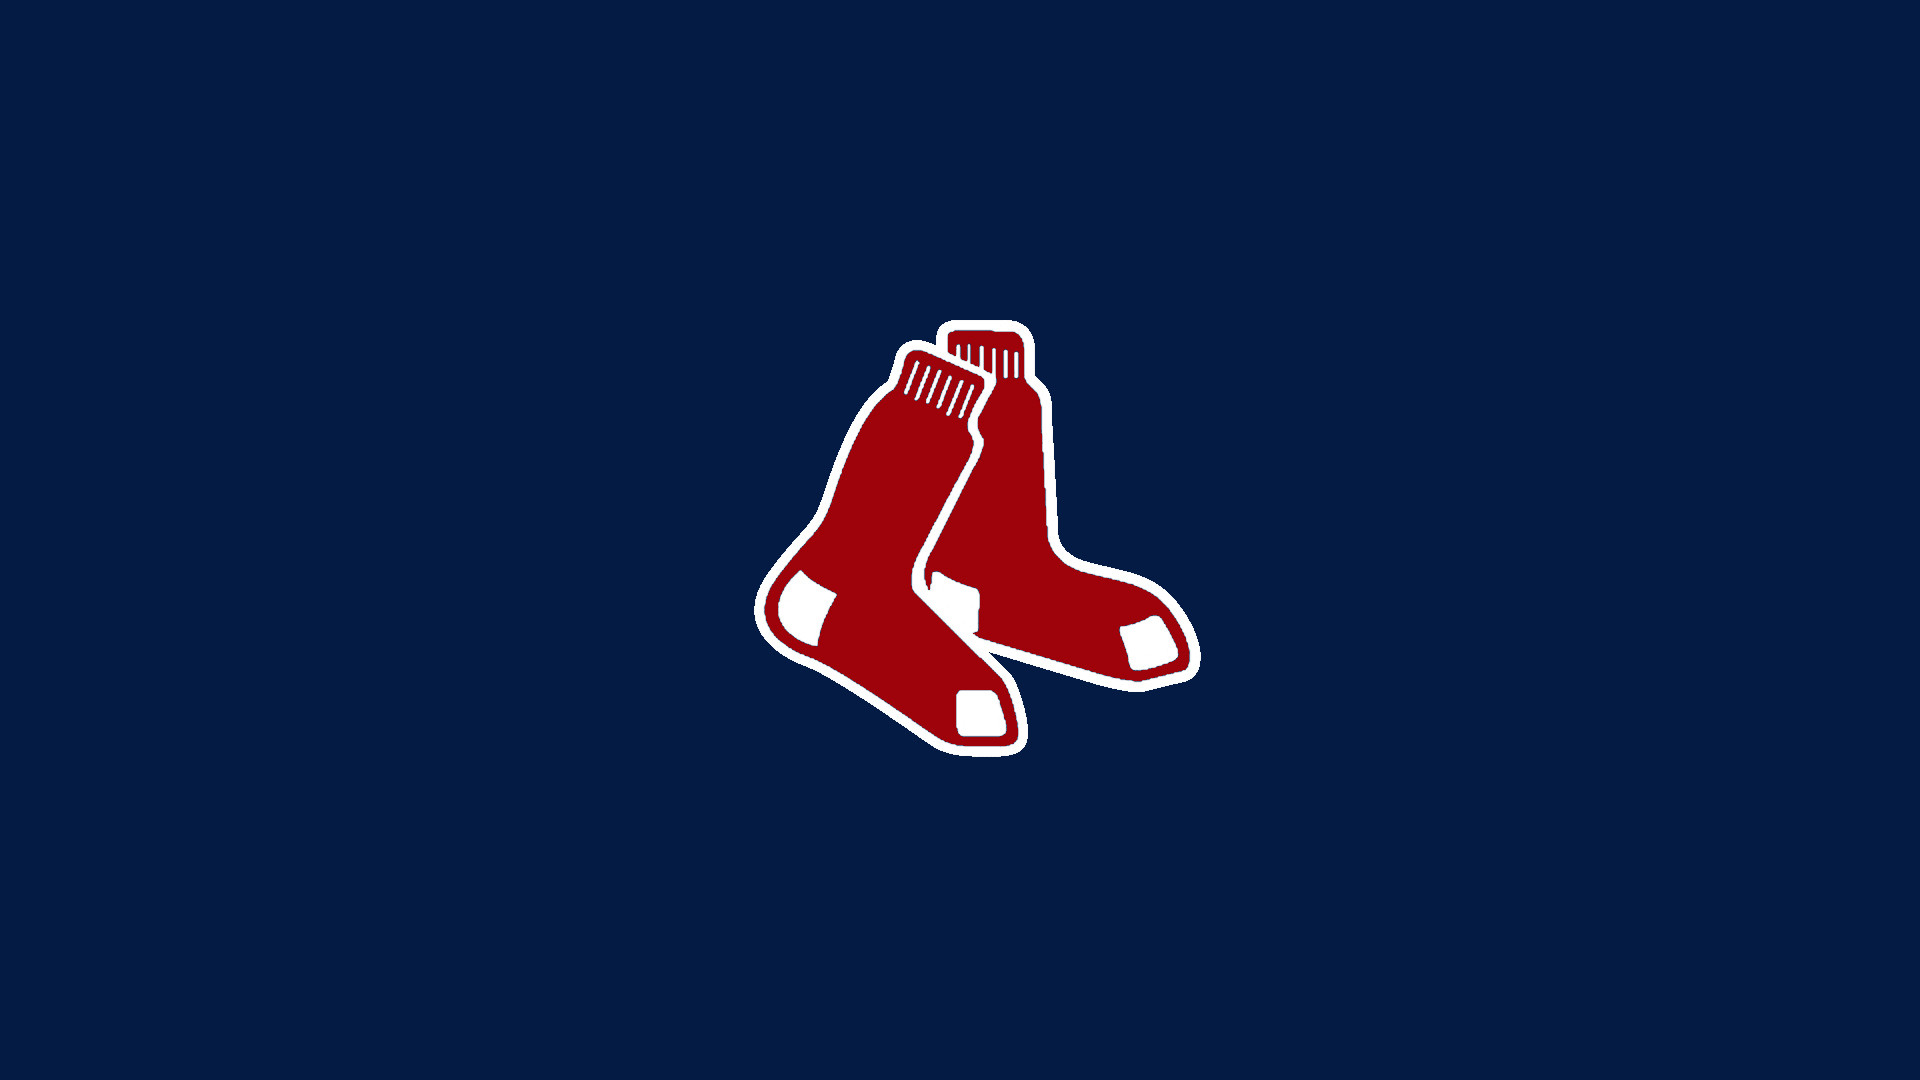 1920x1080 - Boston Red Sox Wallpaper Screensavers 26